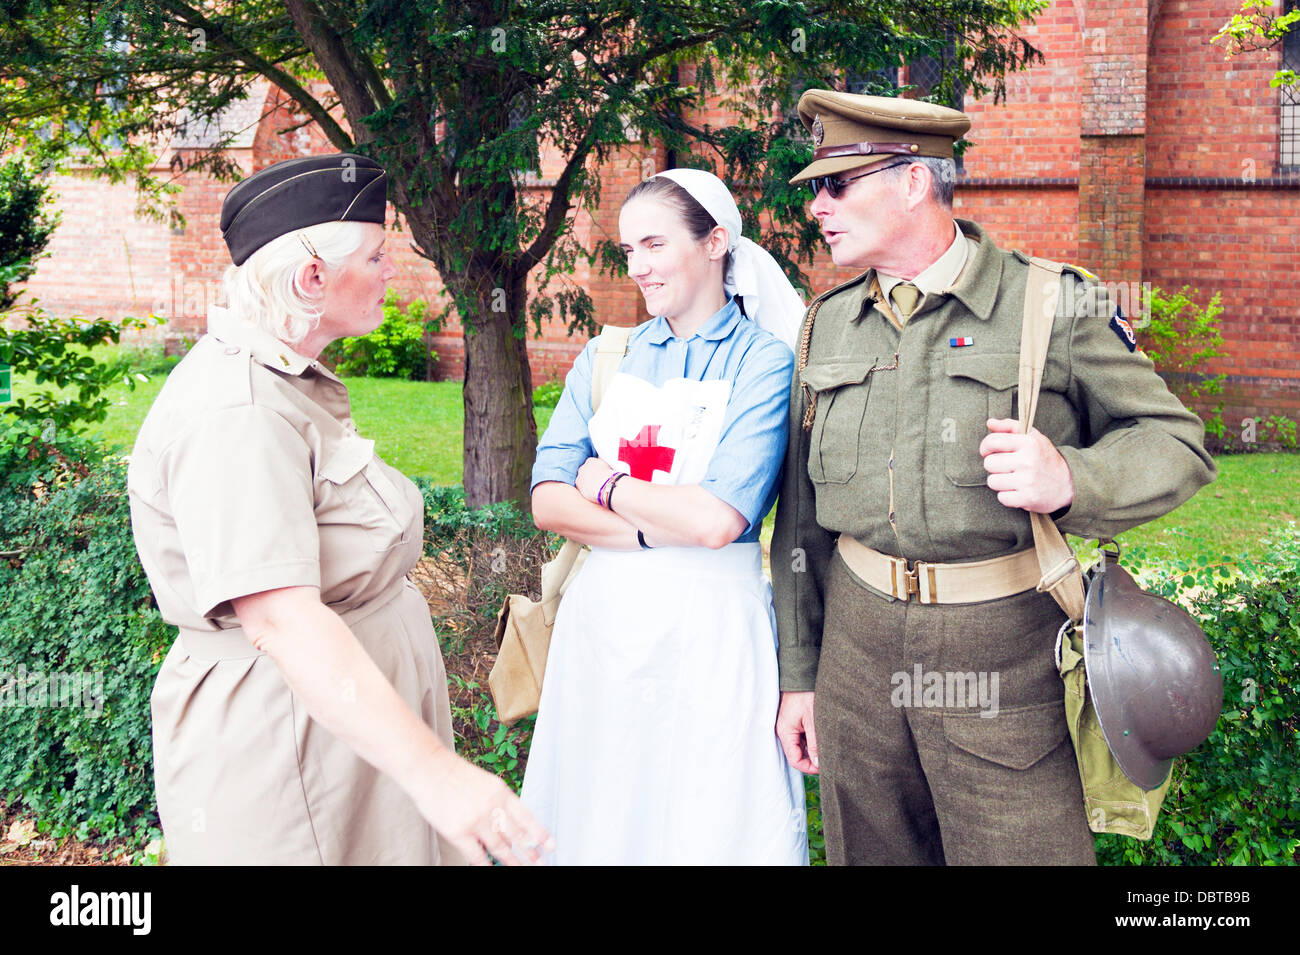 Woodhall Spa. 4th August, 2013. Woodhall Spa 1940's weekend 4/08/2013 Lincolnshire Village UK England. Local - Stock Image